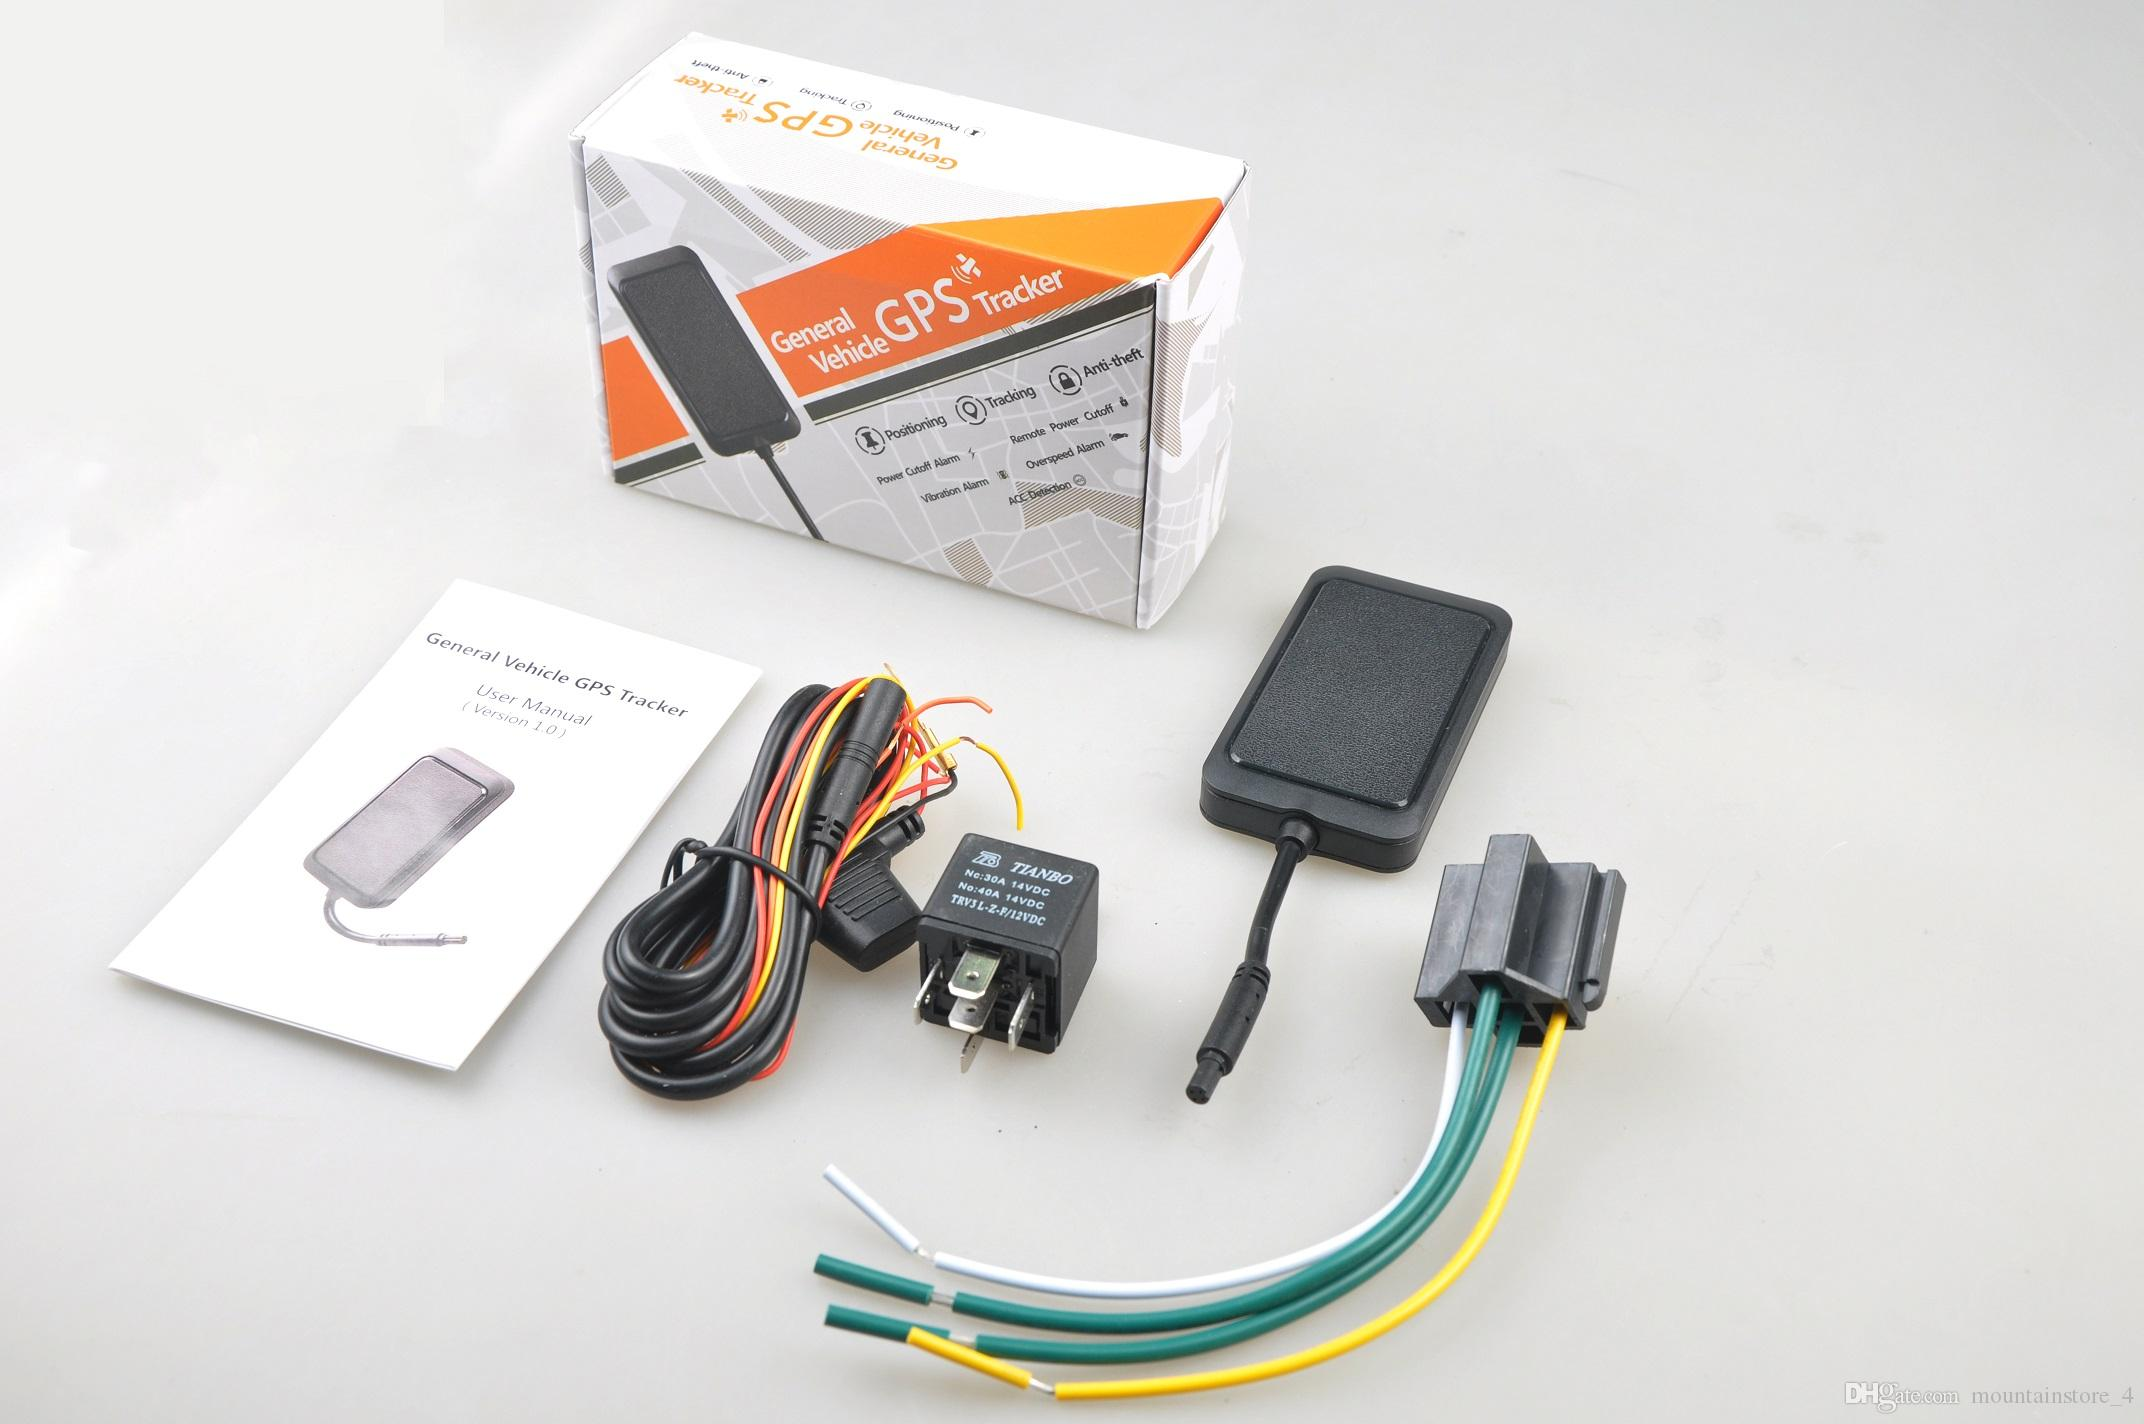 New High Quality Mini Real Time Vehicle Gps Tracker,Remote cut-off ,ACC  detection,Vehicle battery protection,No Monthly Fee